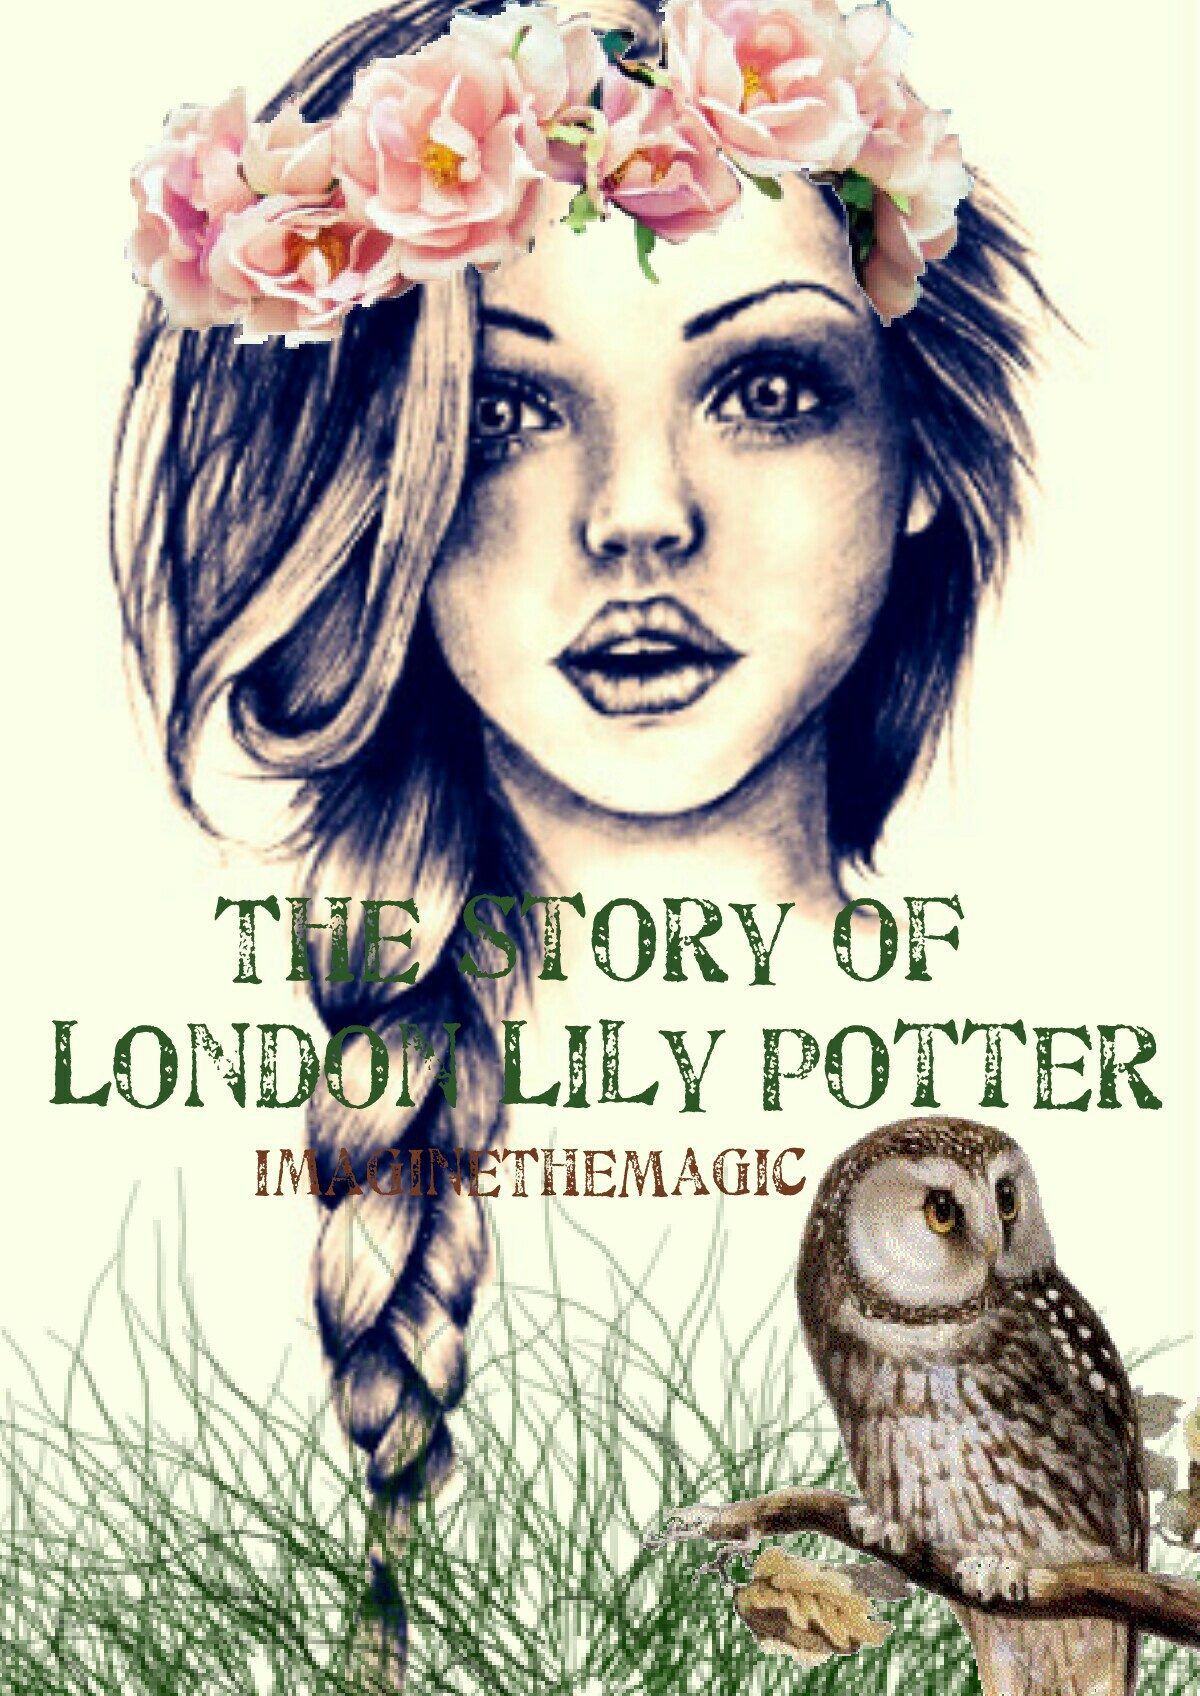 The Story of  London Lily Potter. Another Wattpad story written by yours truly! it's about Harry Potter's sister and her adventures at Hogwarts!